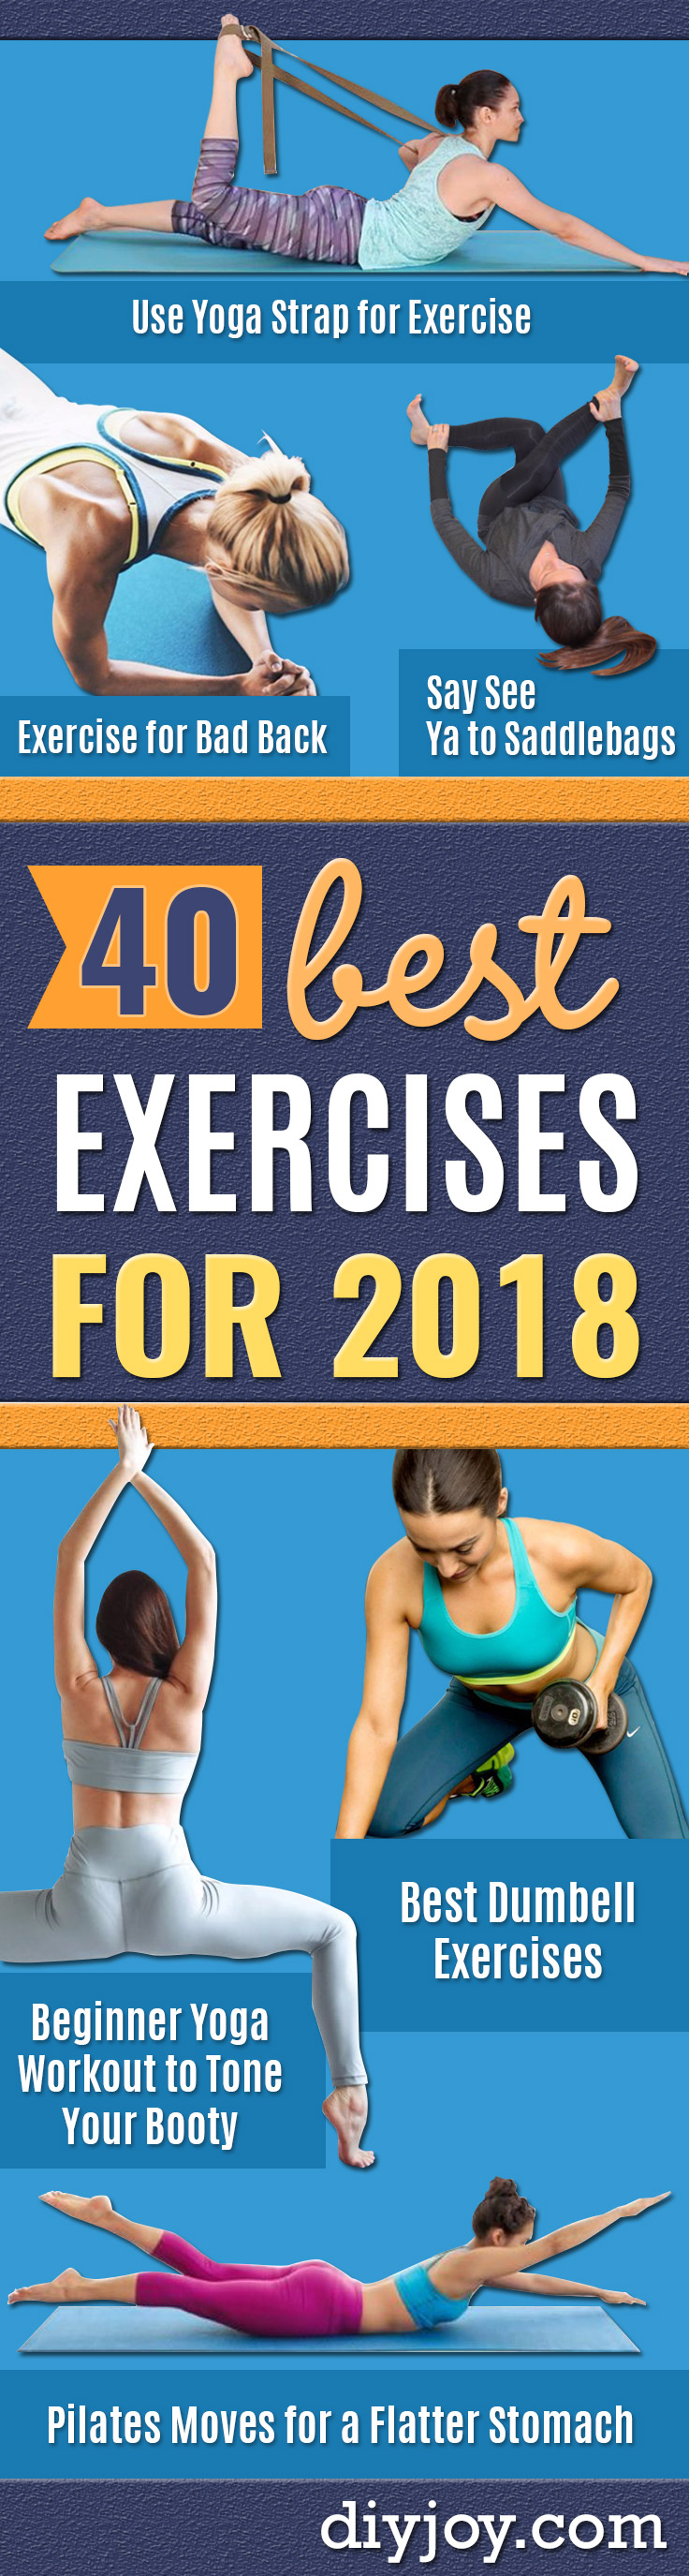 Best Exercises for 2018 - Easy At Home Exercises - Quick Exercise Tutorials to Try at Lunch Break - Ways To Get In Shape - Butt, Abs, Arms, Legs, Thighs, Tummy http://diyjoy.com/best-at-home-exercises-2018